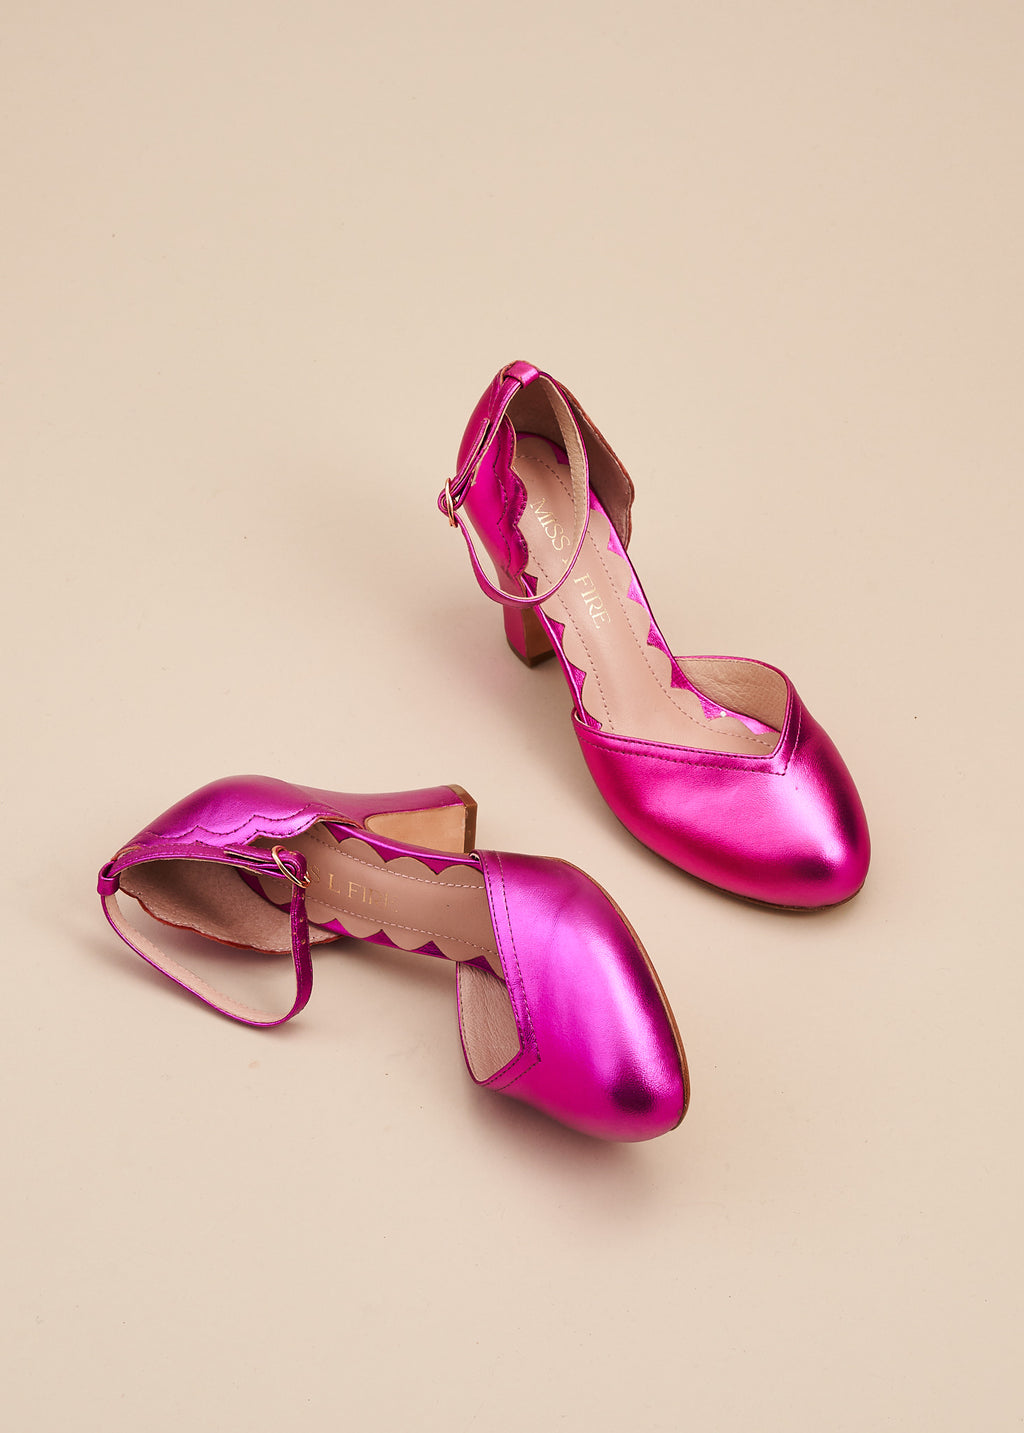 Layla, by Miss L Fire,  in beautiful violet metallic leather is our go-to, every day, vintage inspired two part bar shoe with 'v' shaped topline, adjustable ankle strap, 8cm curved heel and cute scalloped detail. Wear at home, or plan a future party. Either way, prepare to dance all night in this classic style.